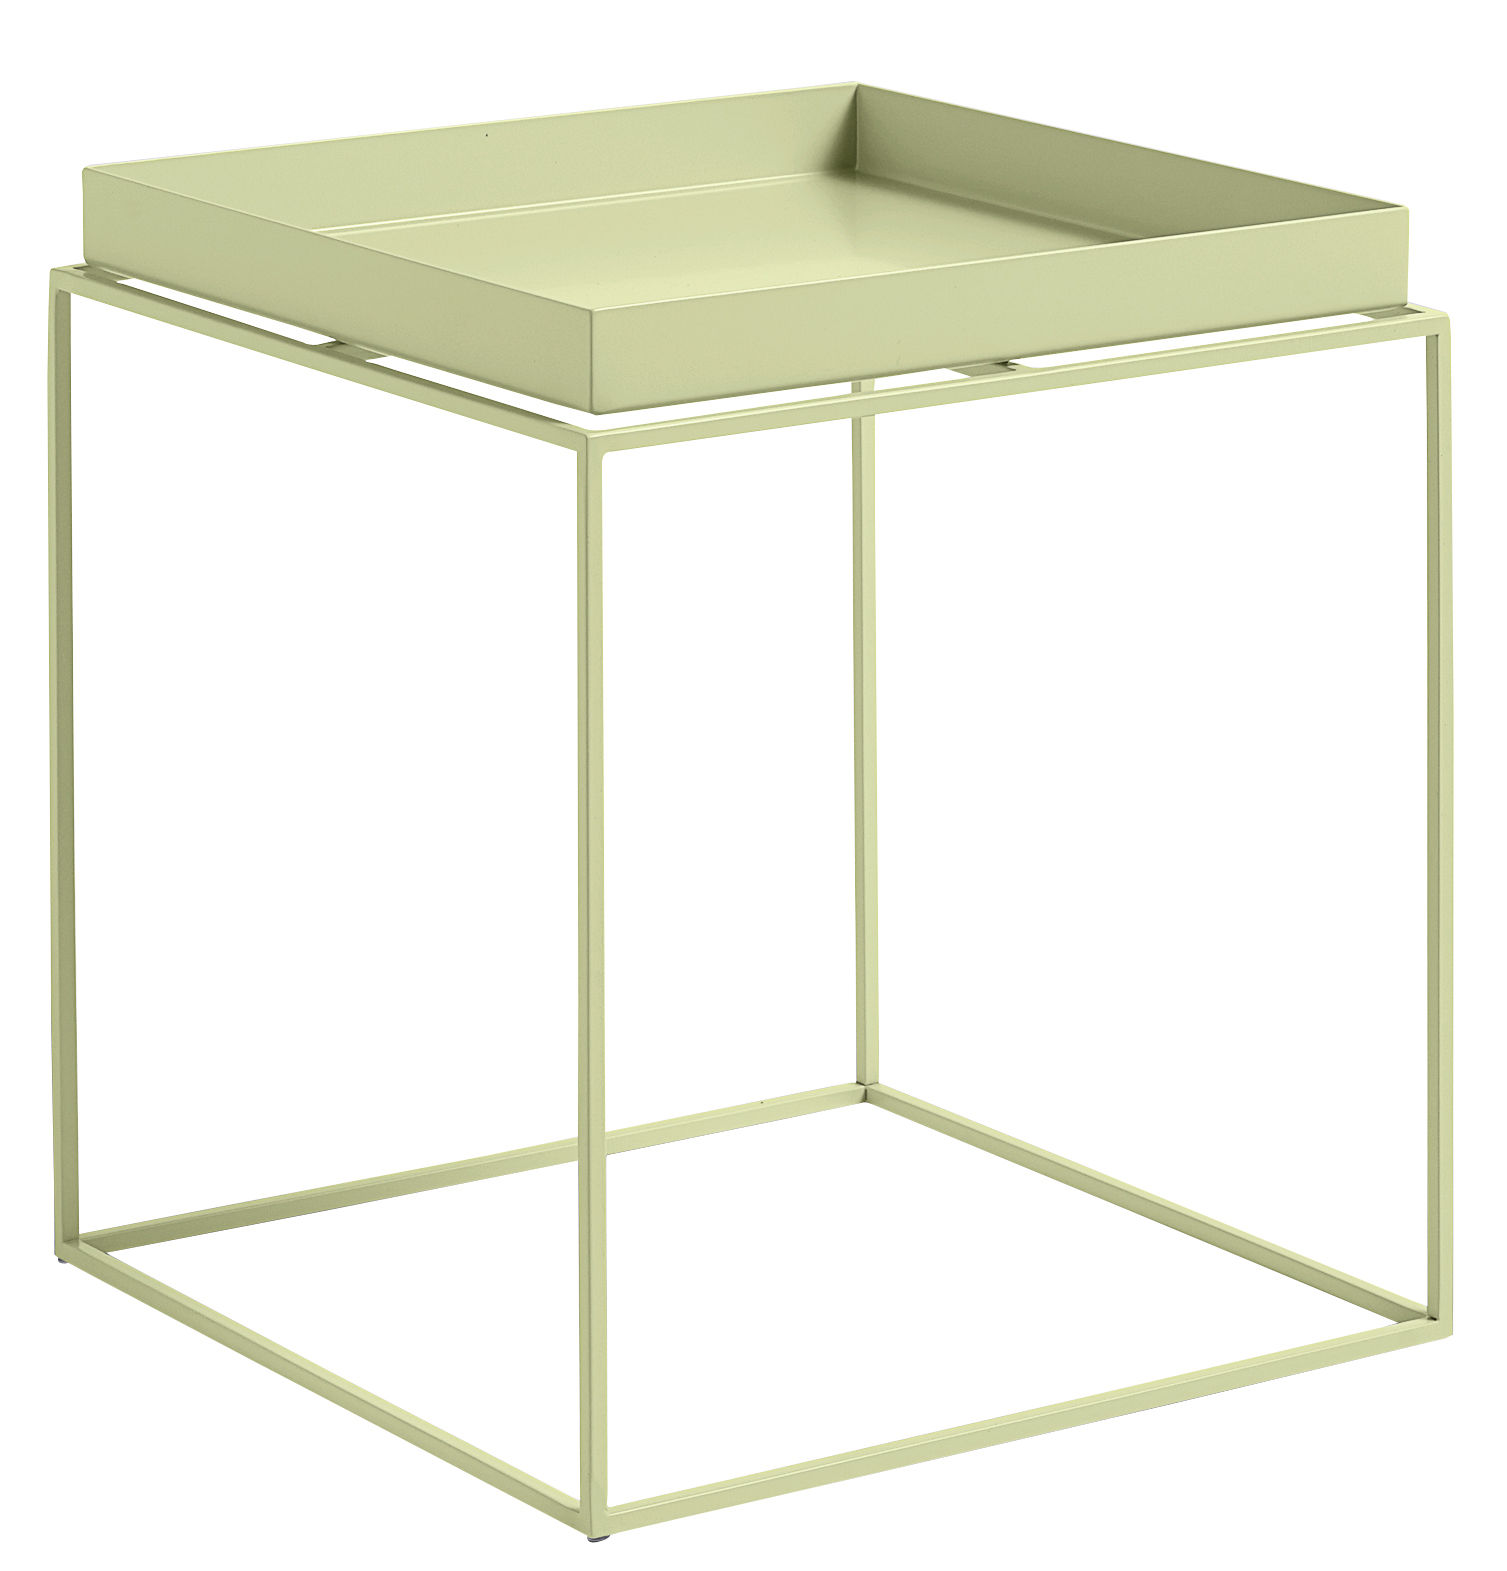 table basse tray h 40 cm 40 x 40 cm carr jaune clair. Black Bedroom Furniture Sets. Home Design Ideas